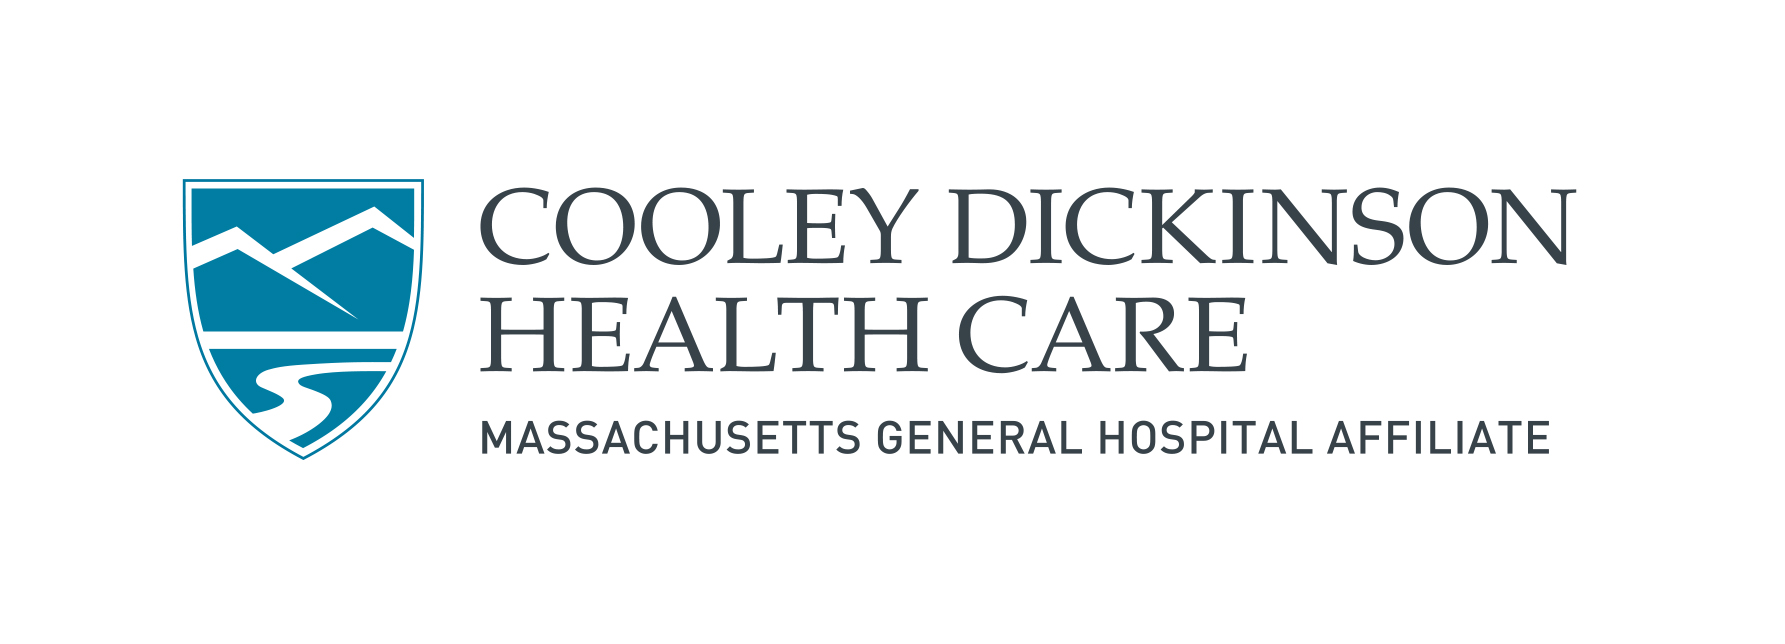 Cooley Dickenson Hospital